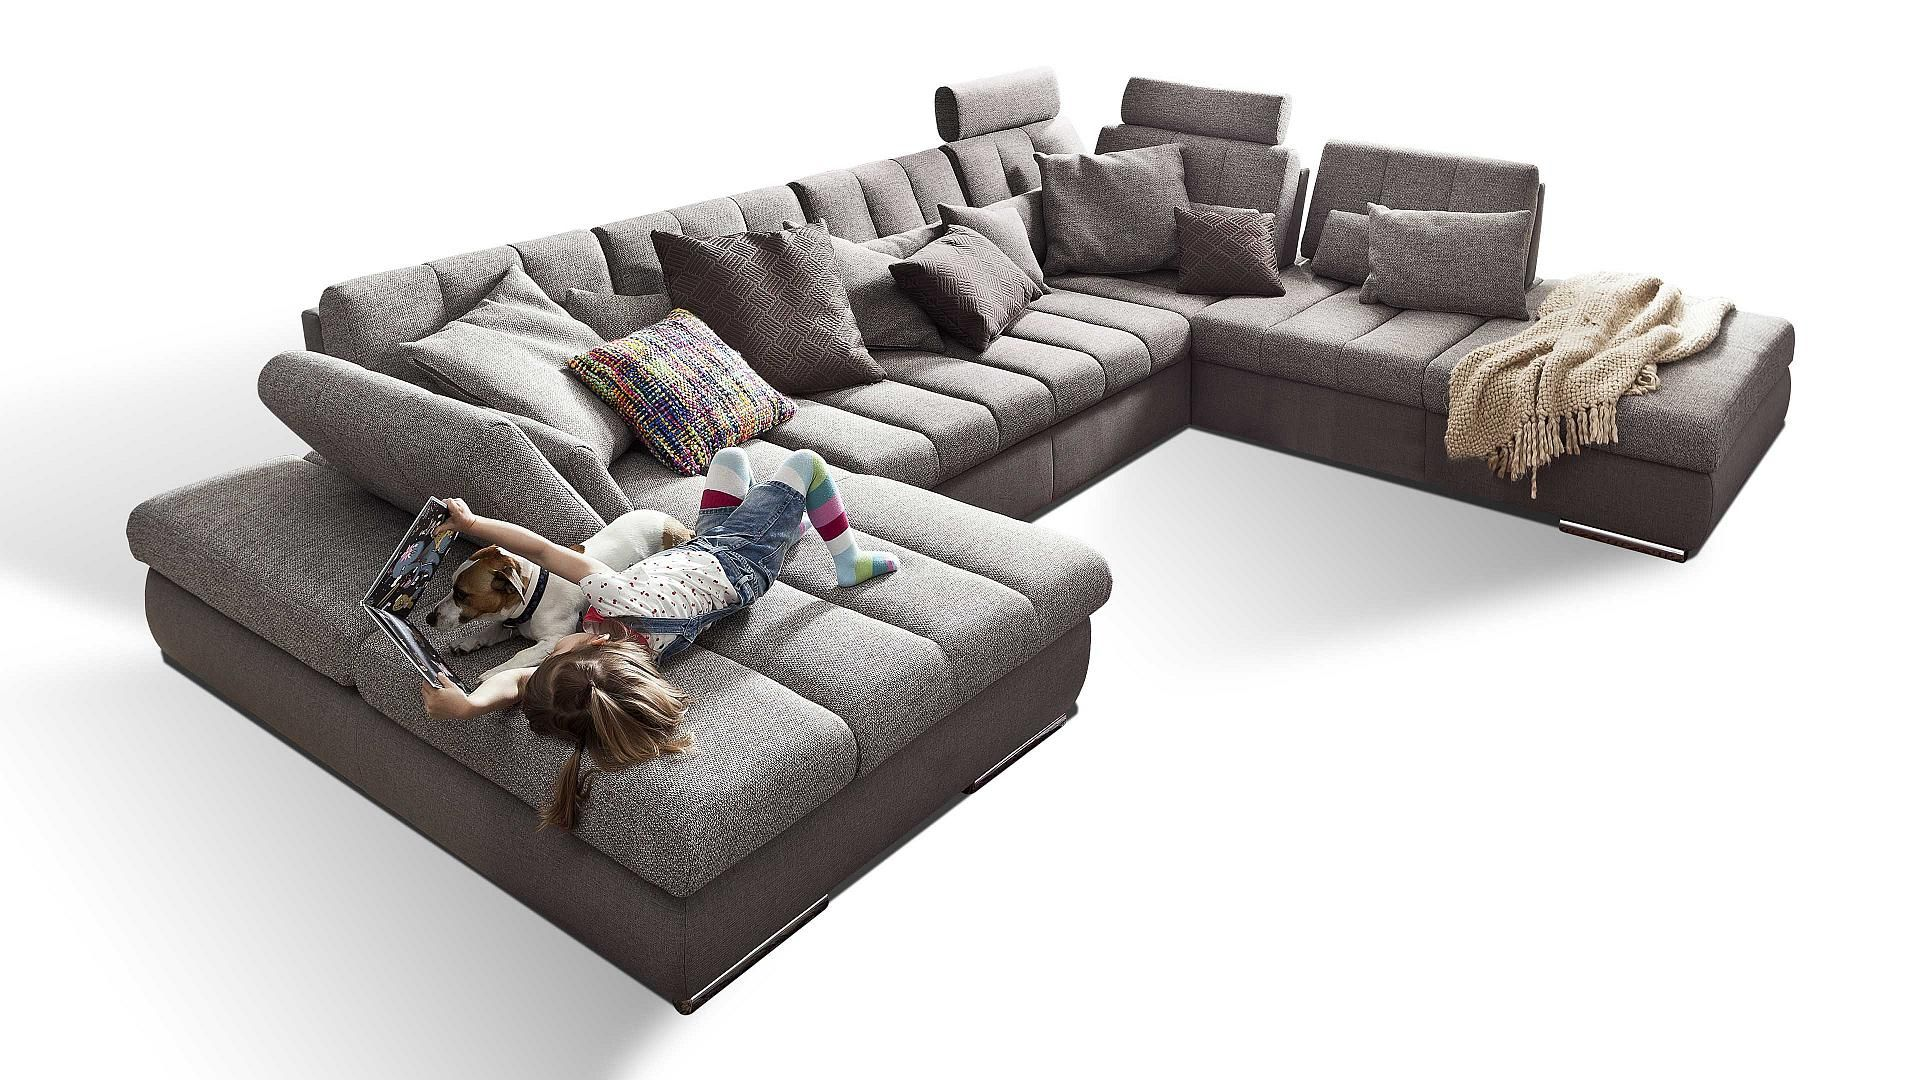 Sofa Schonbezug Ecksofa Ecksofa Fr Interesting Sessel Schonbezug Sessel Lovely